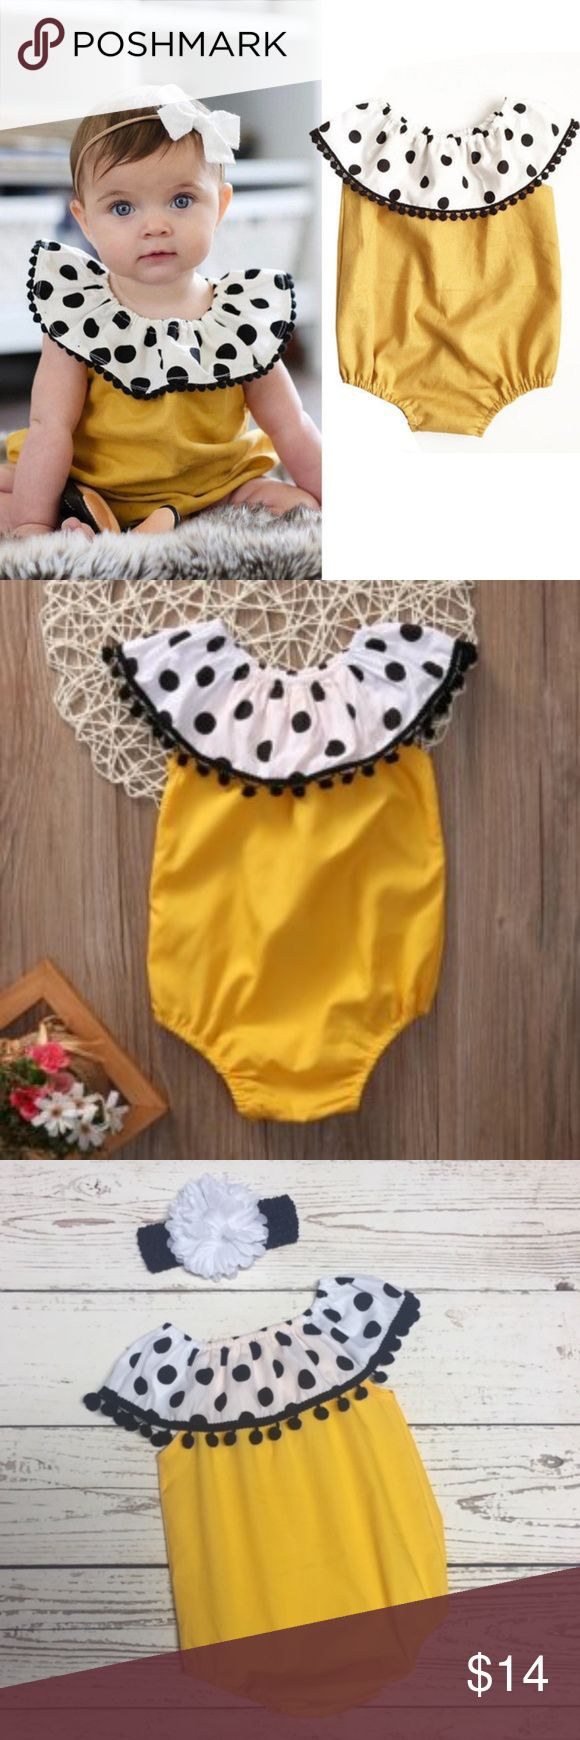 NEW Gold and Polka Dot Pom Pom Jumper Gold body with on or off the shoulder collar of white with black polka dots and pom poms.  100% Cotton  Gold color is brighter than in the first photo.  I took the last photo myself.  Price is firm #UE937446  Bodysuit, jumpsuit, onesie, sunsuit, romper, sun suit One Pieces Bodysuits